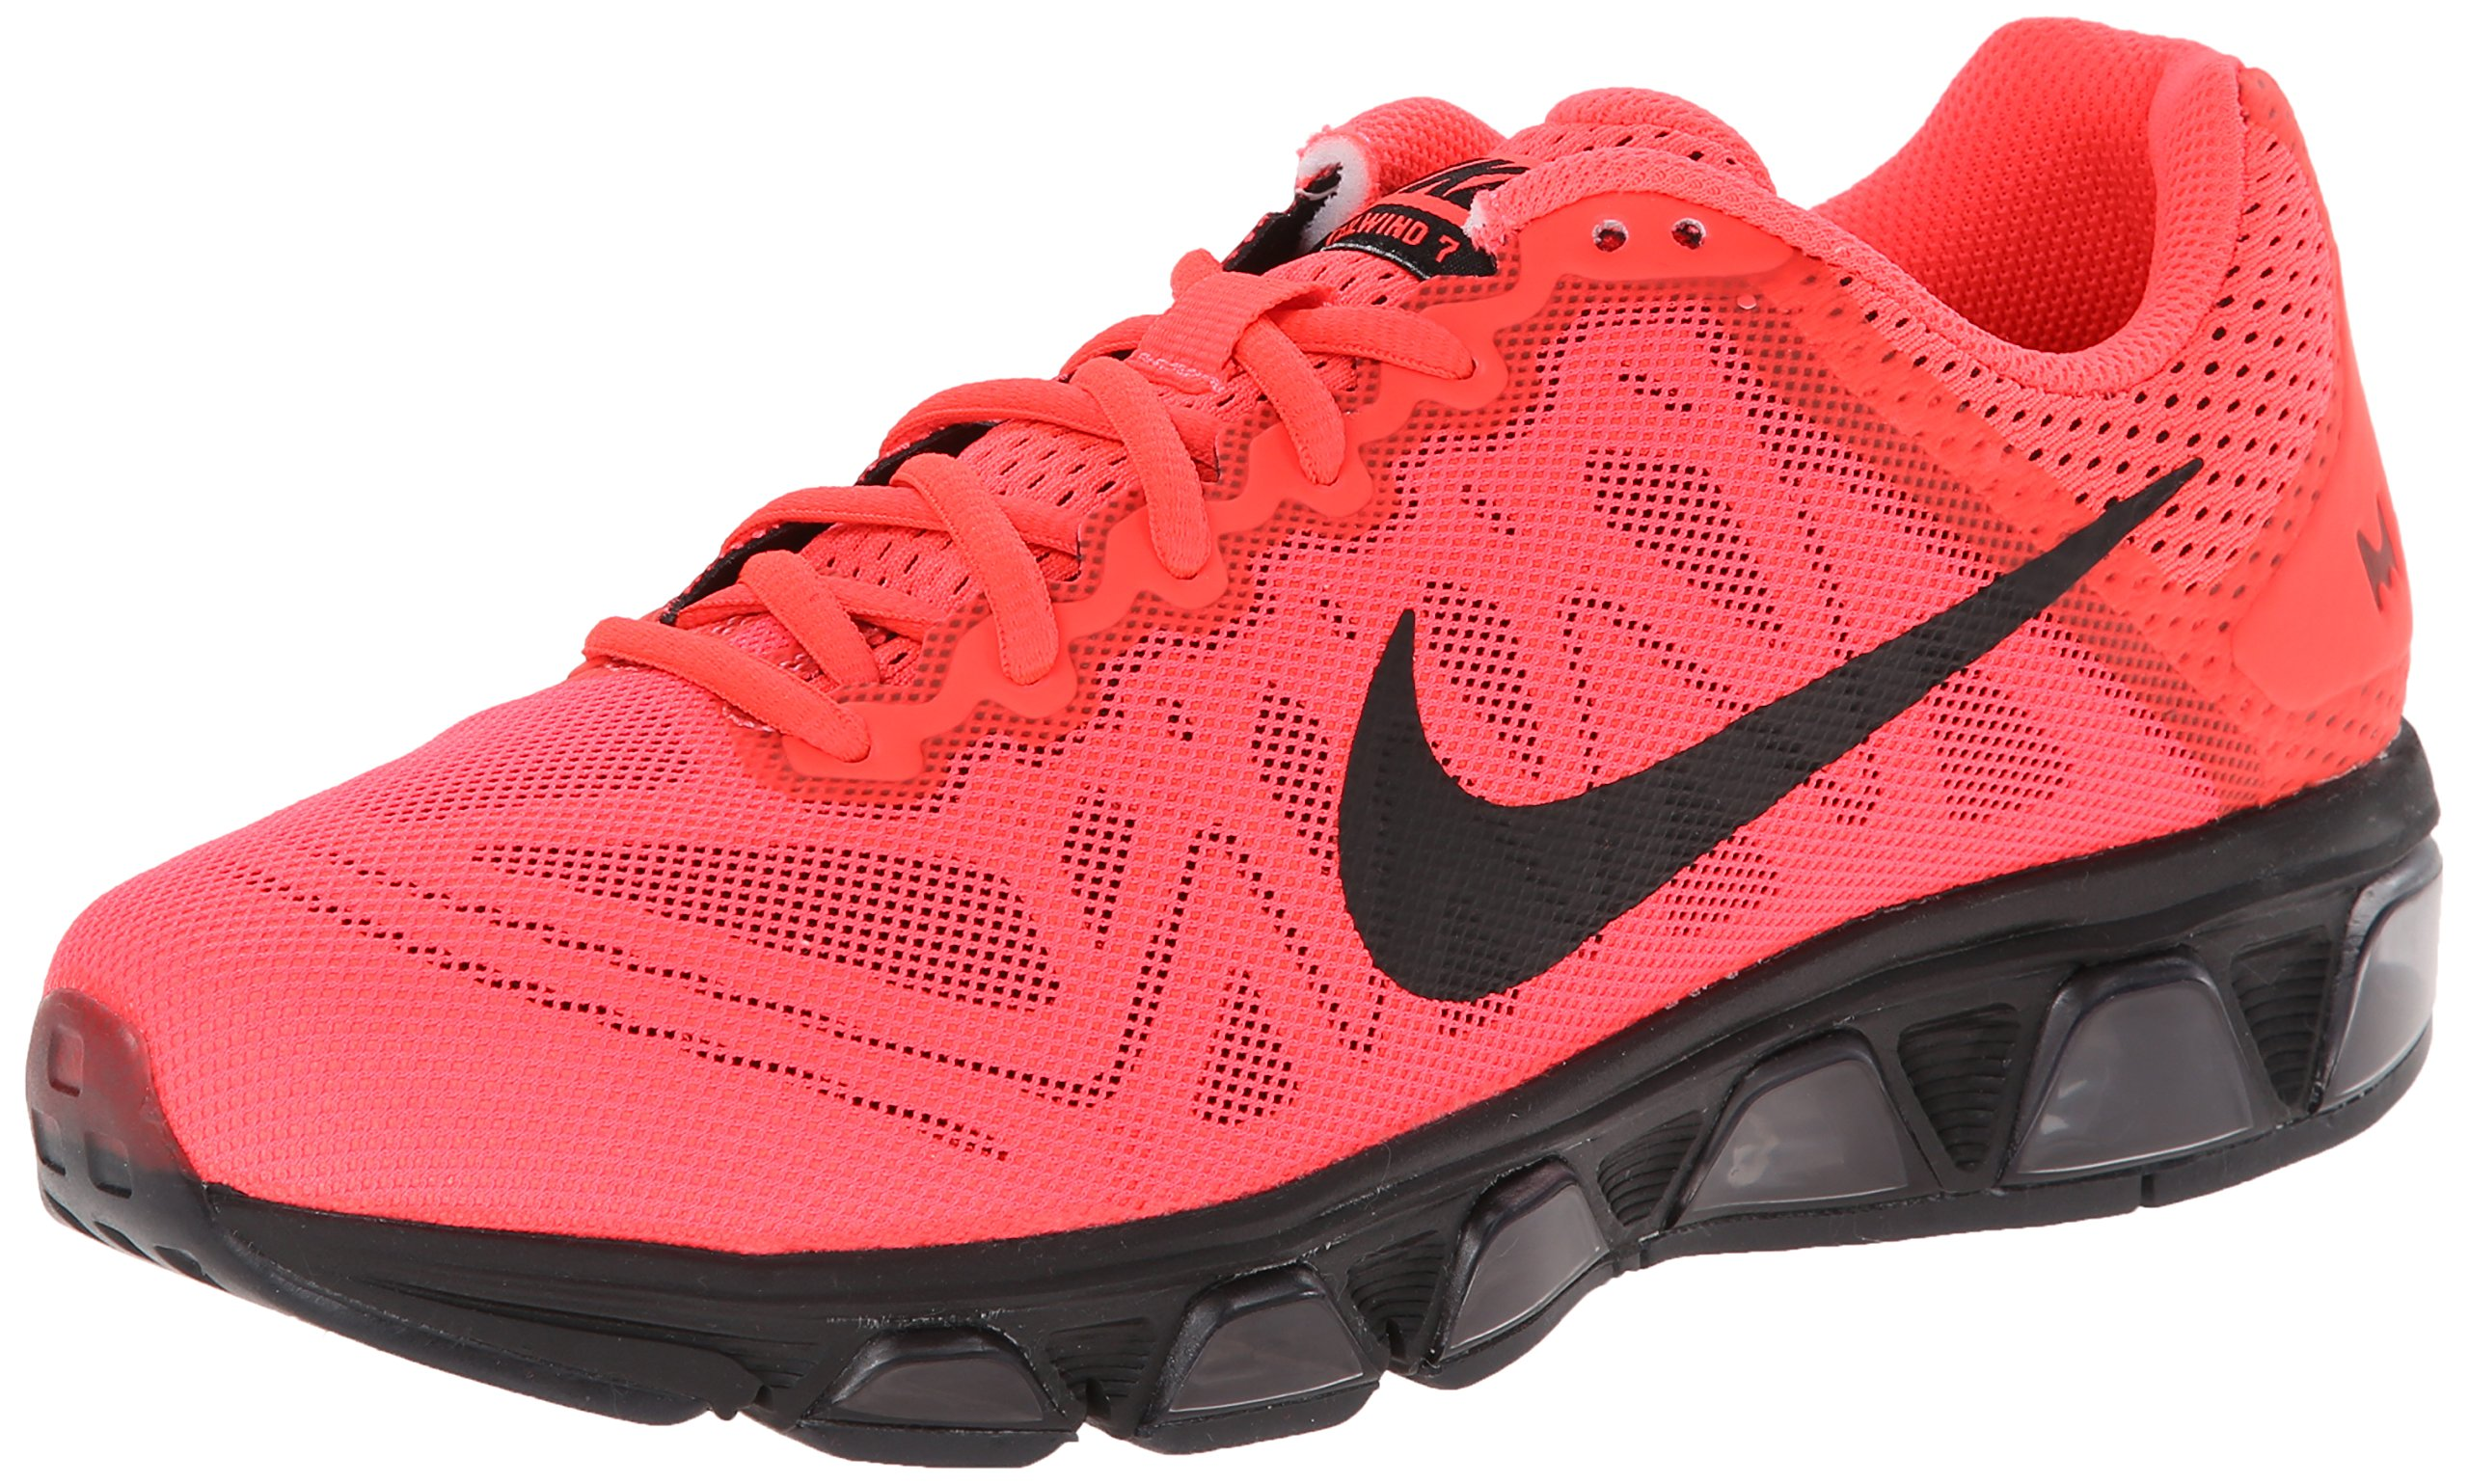 Nike Womens Air Max Tailwind 7 Running Trainers 683635 Sneakers Shoes